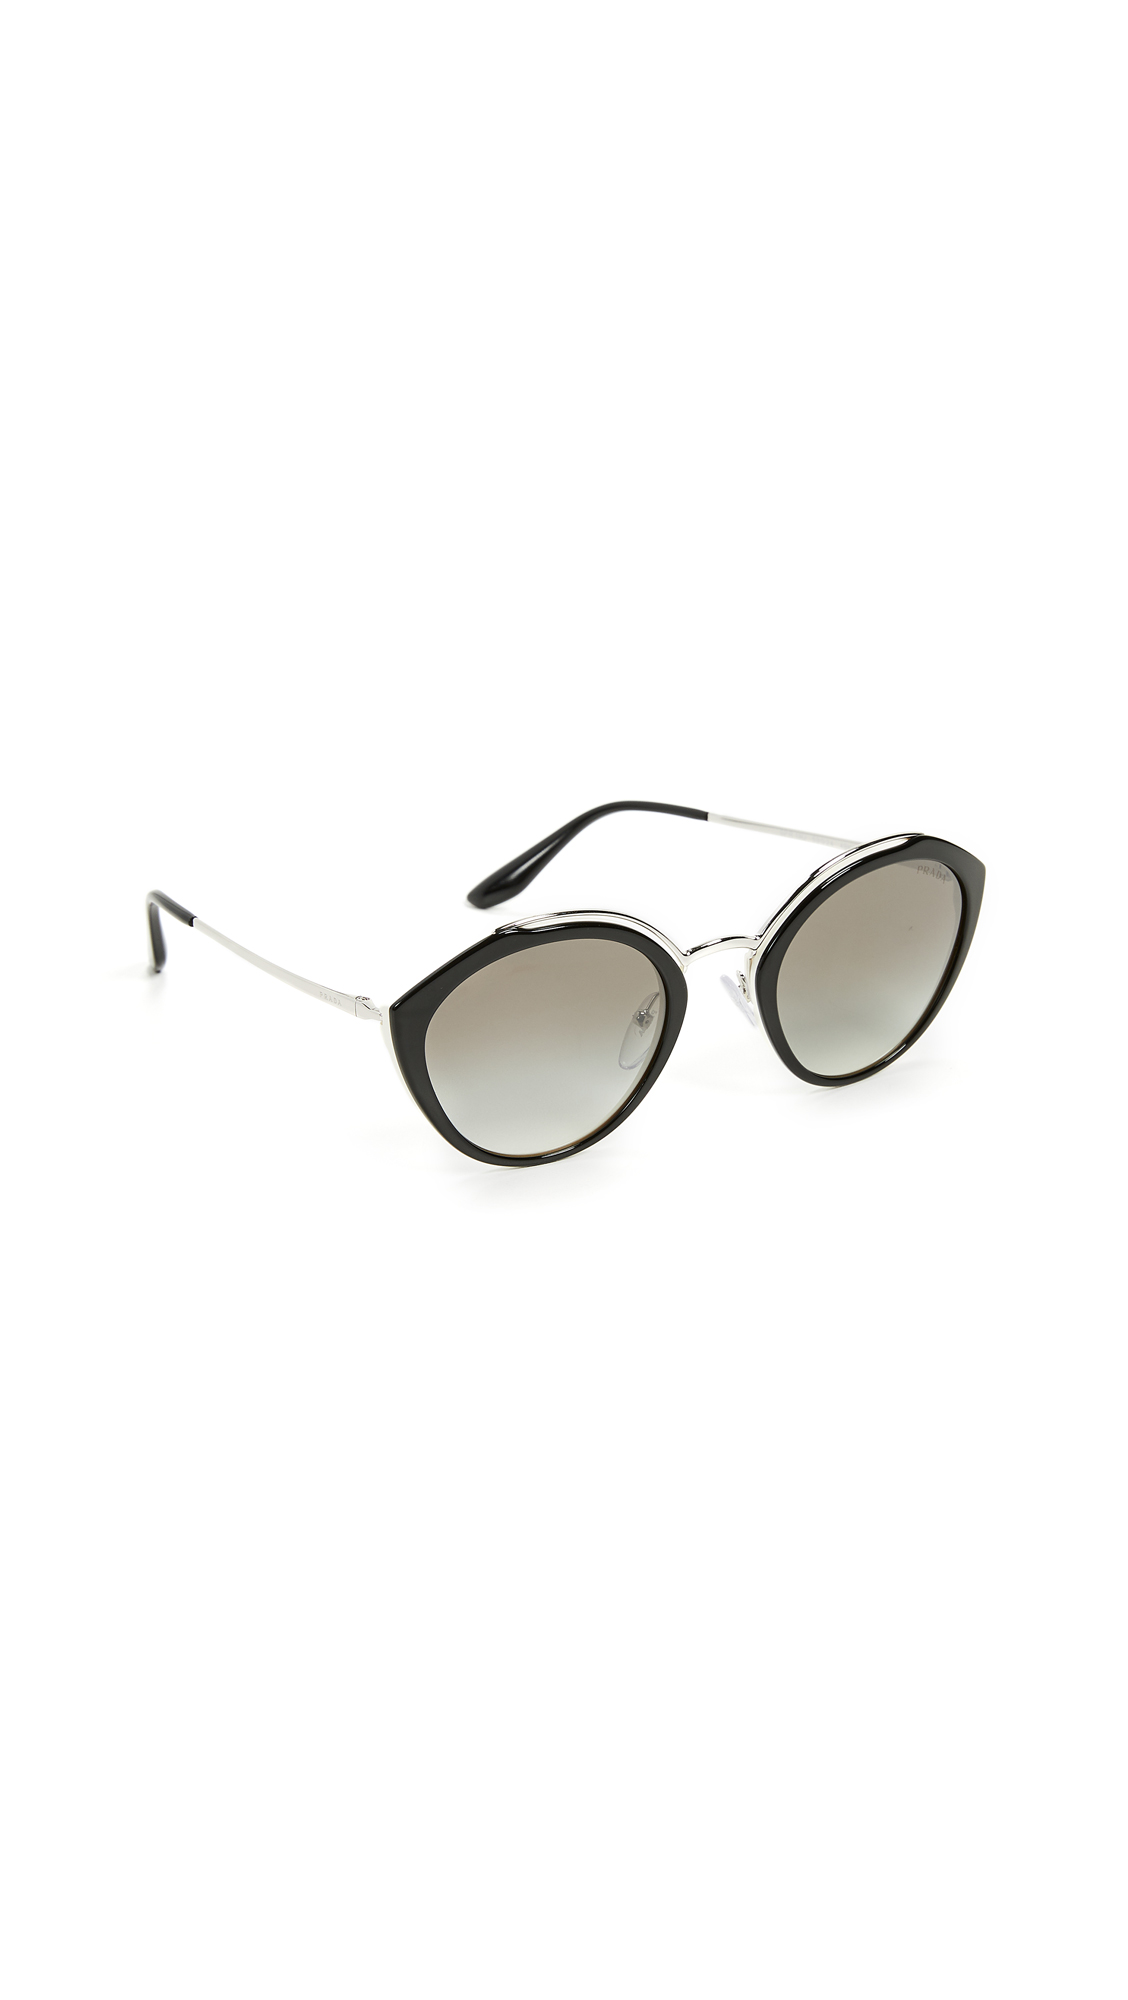 Prada Oval Sunglasses In Silver/Grey